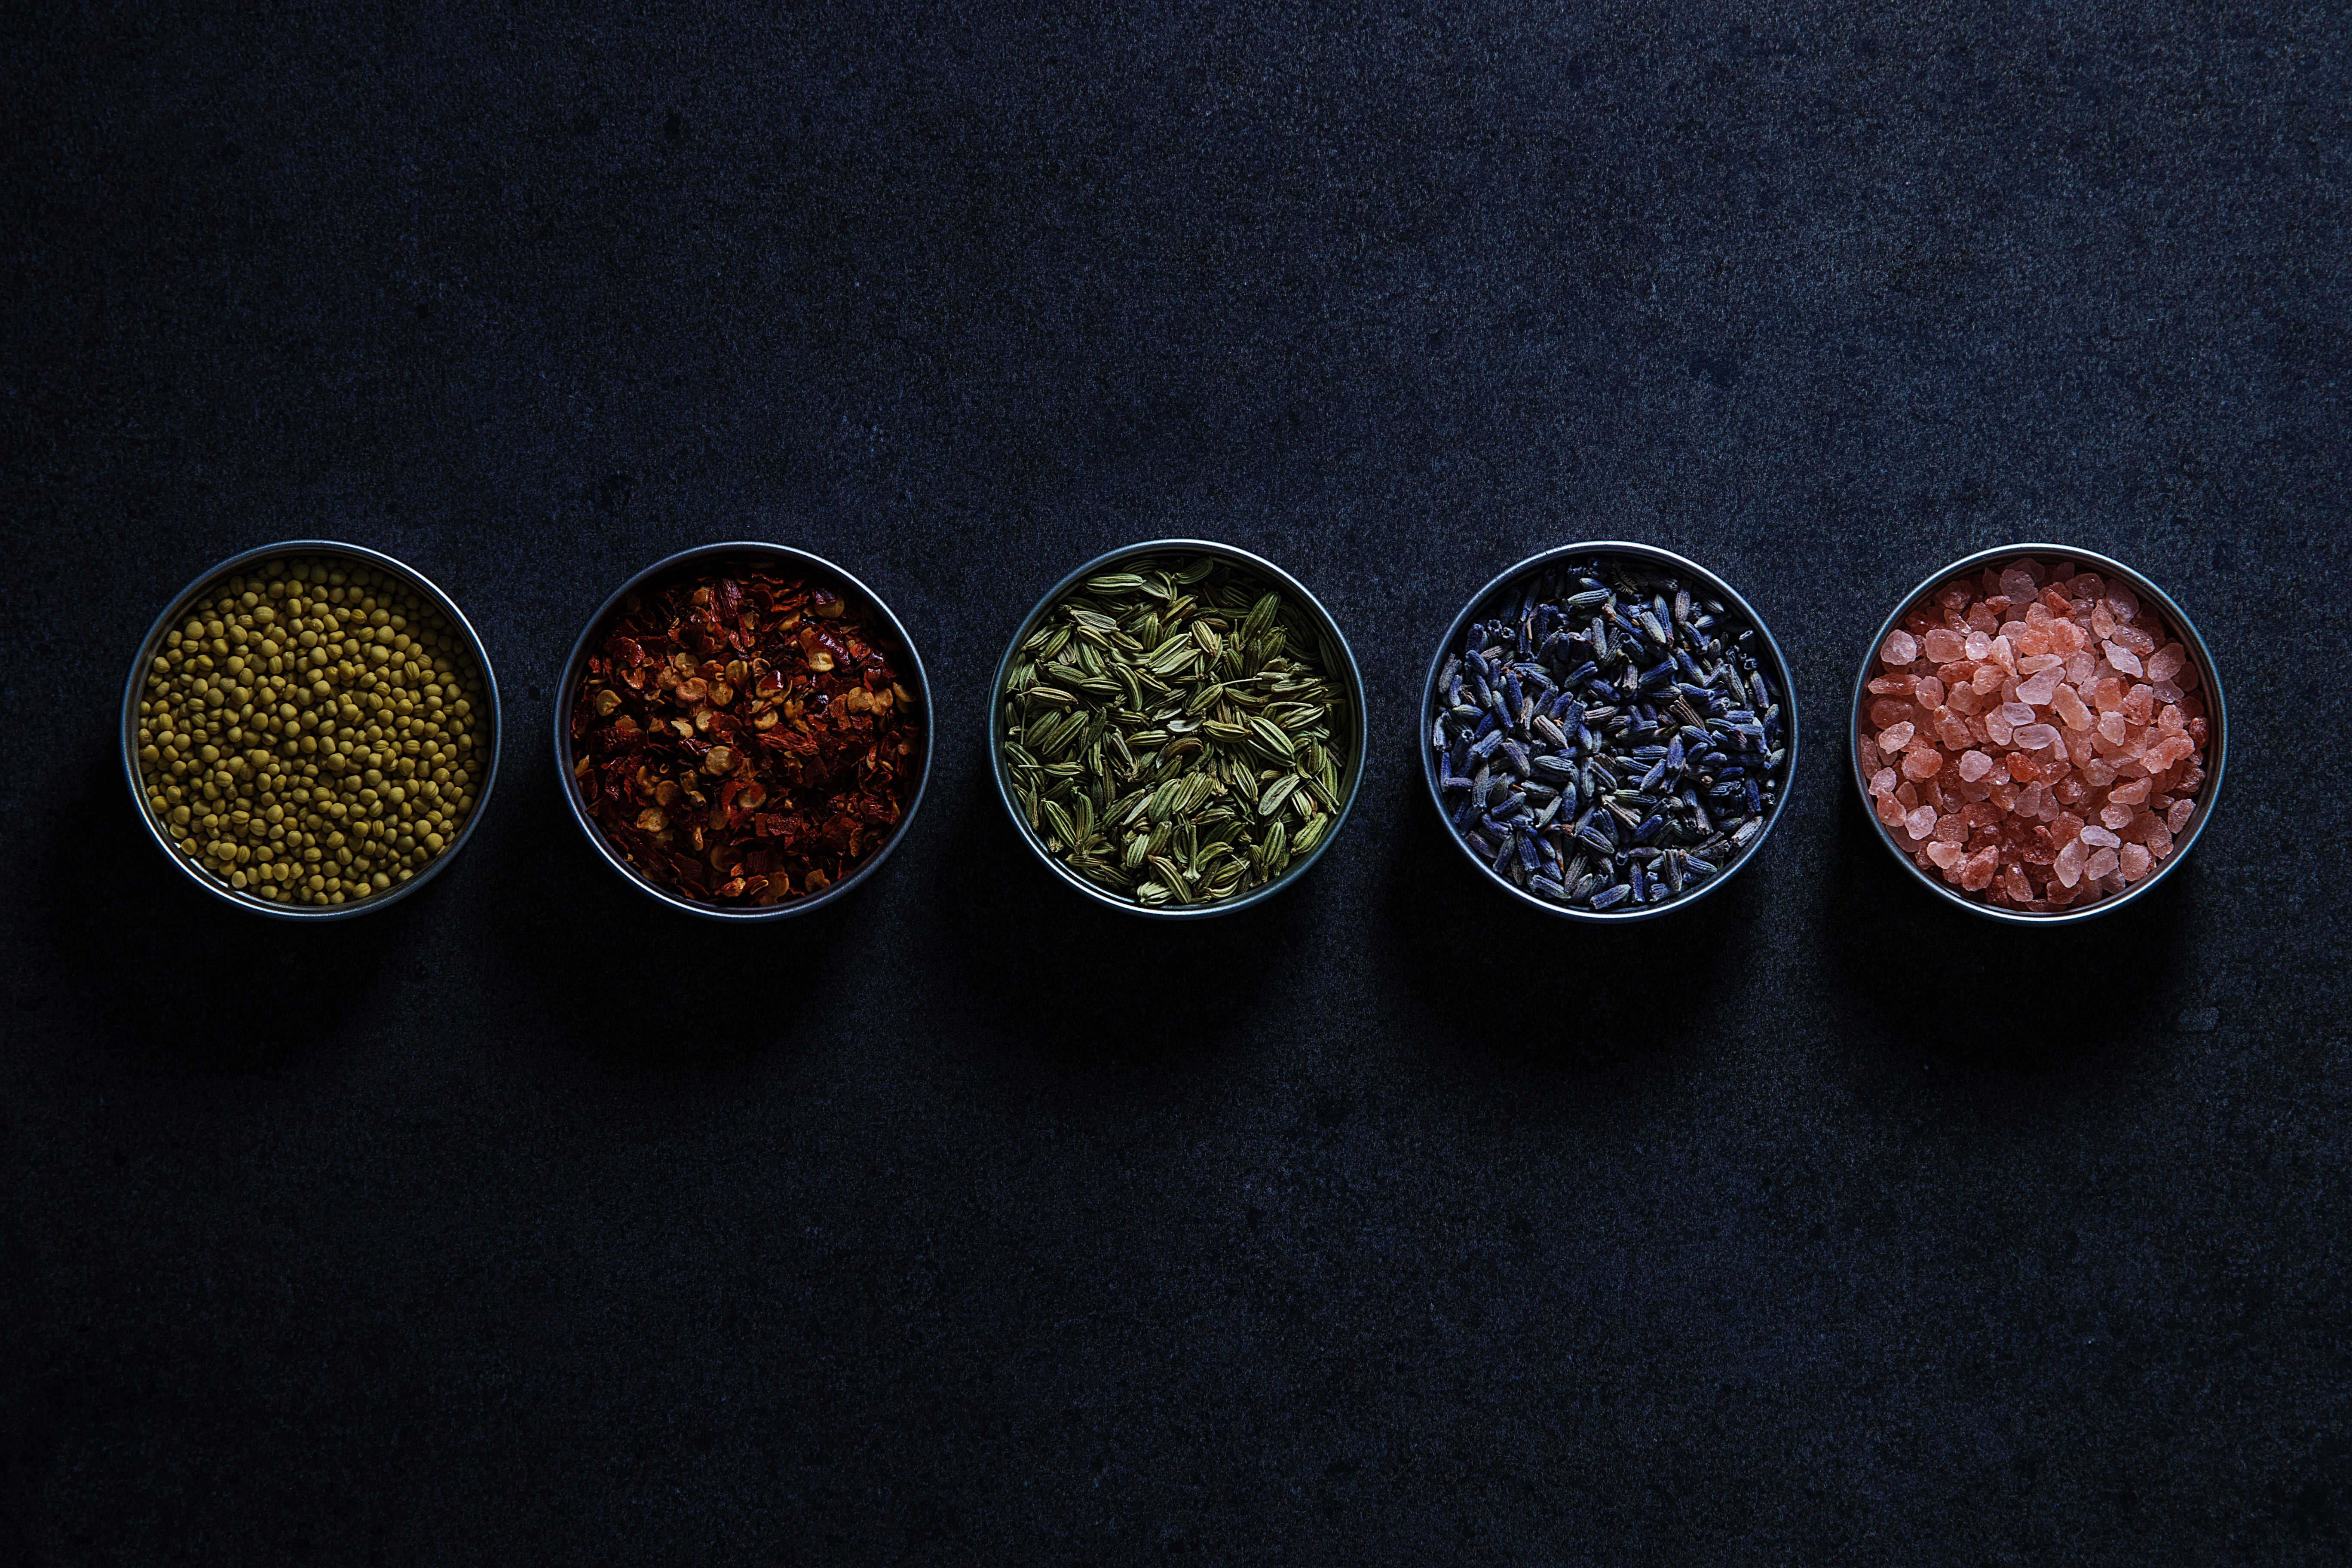 Mindful Eating Series Part I: 5 Herbs and Spices to Boost Your Health